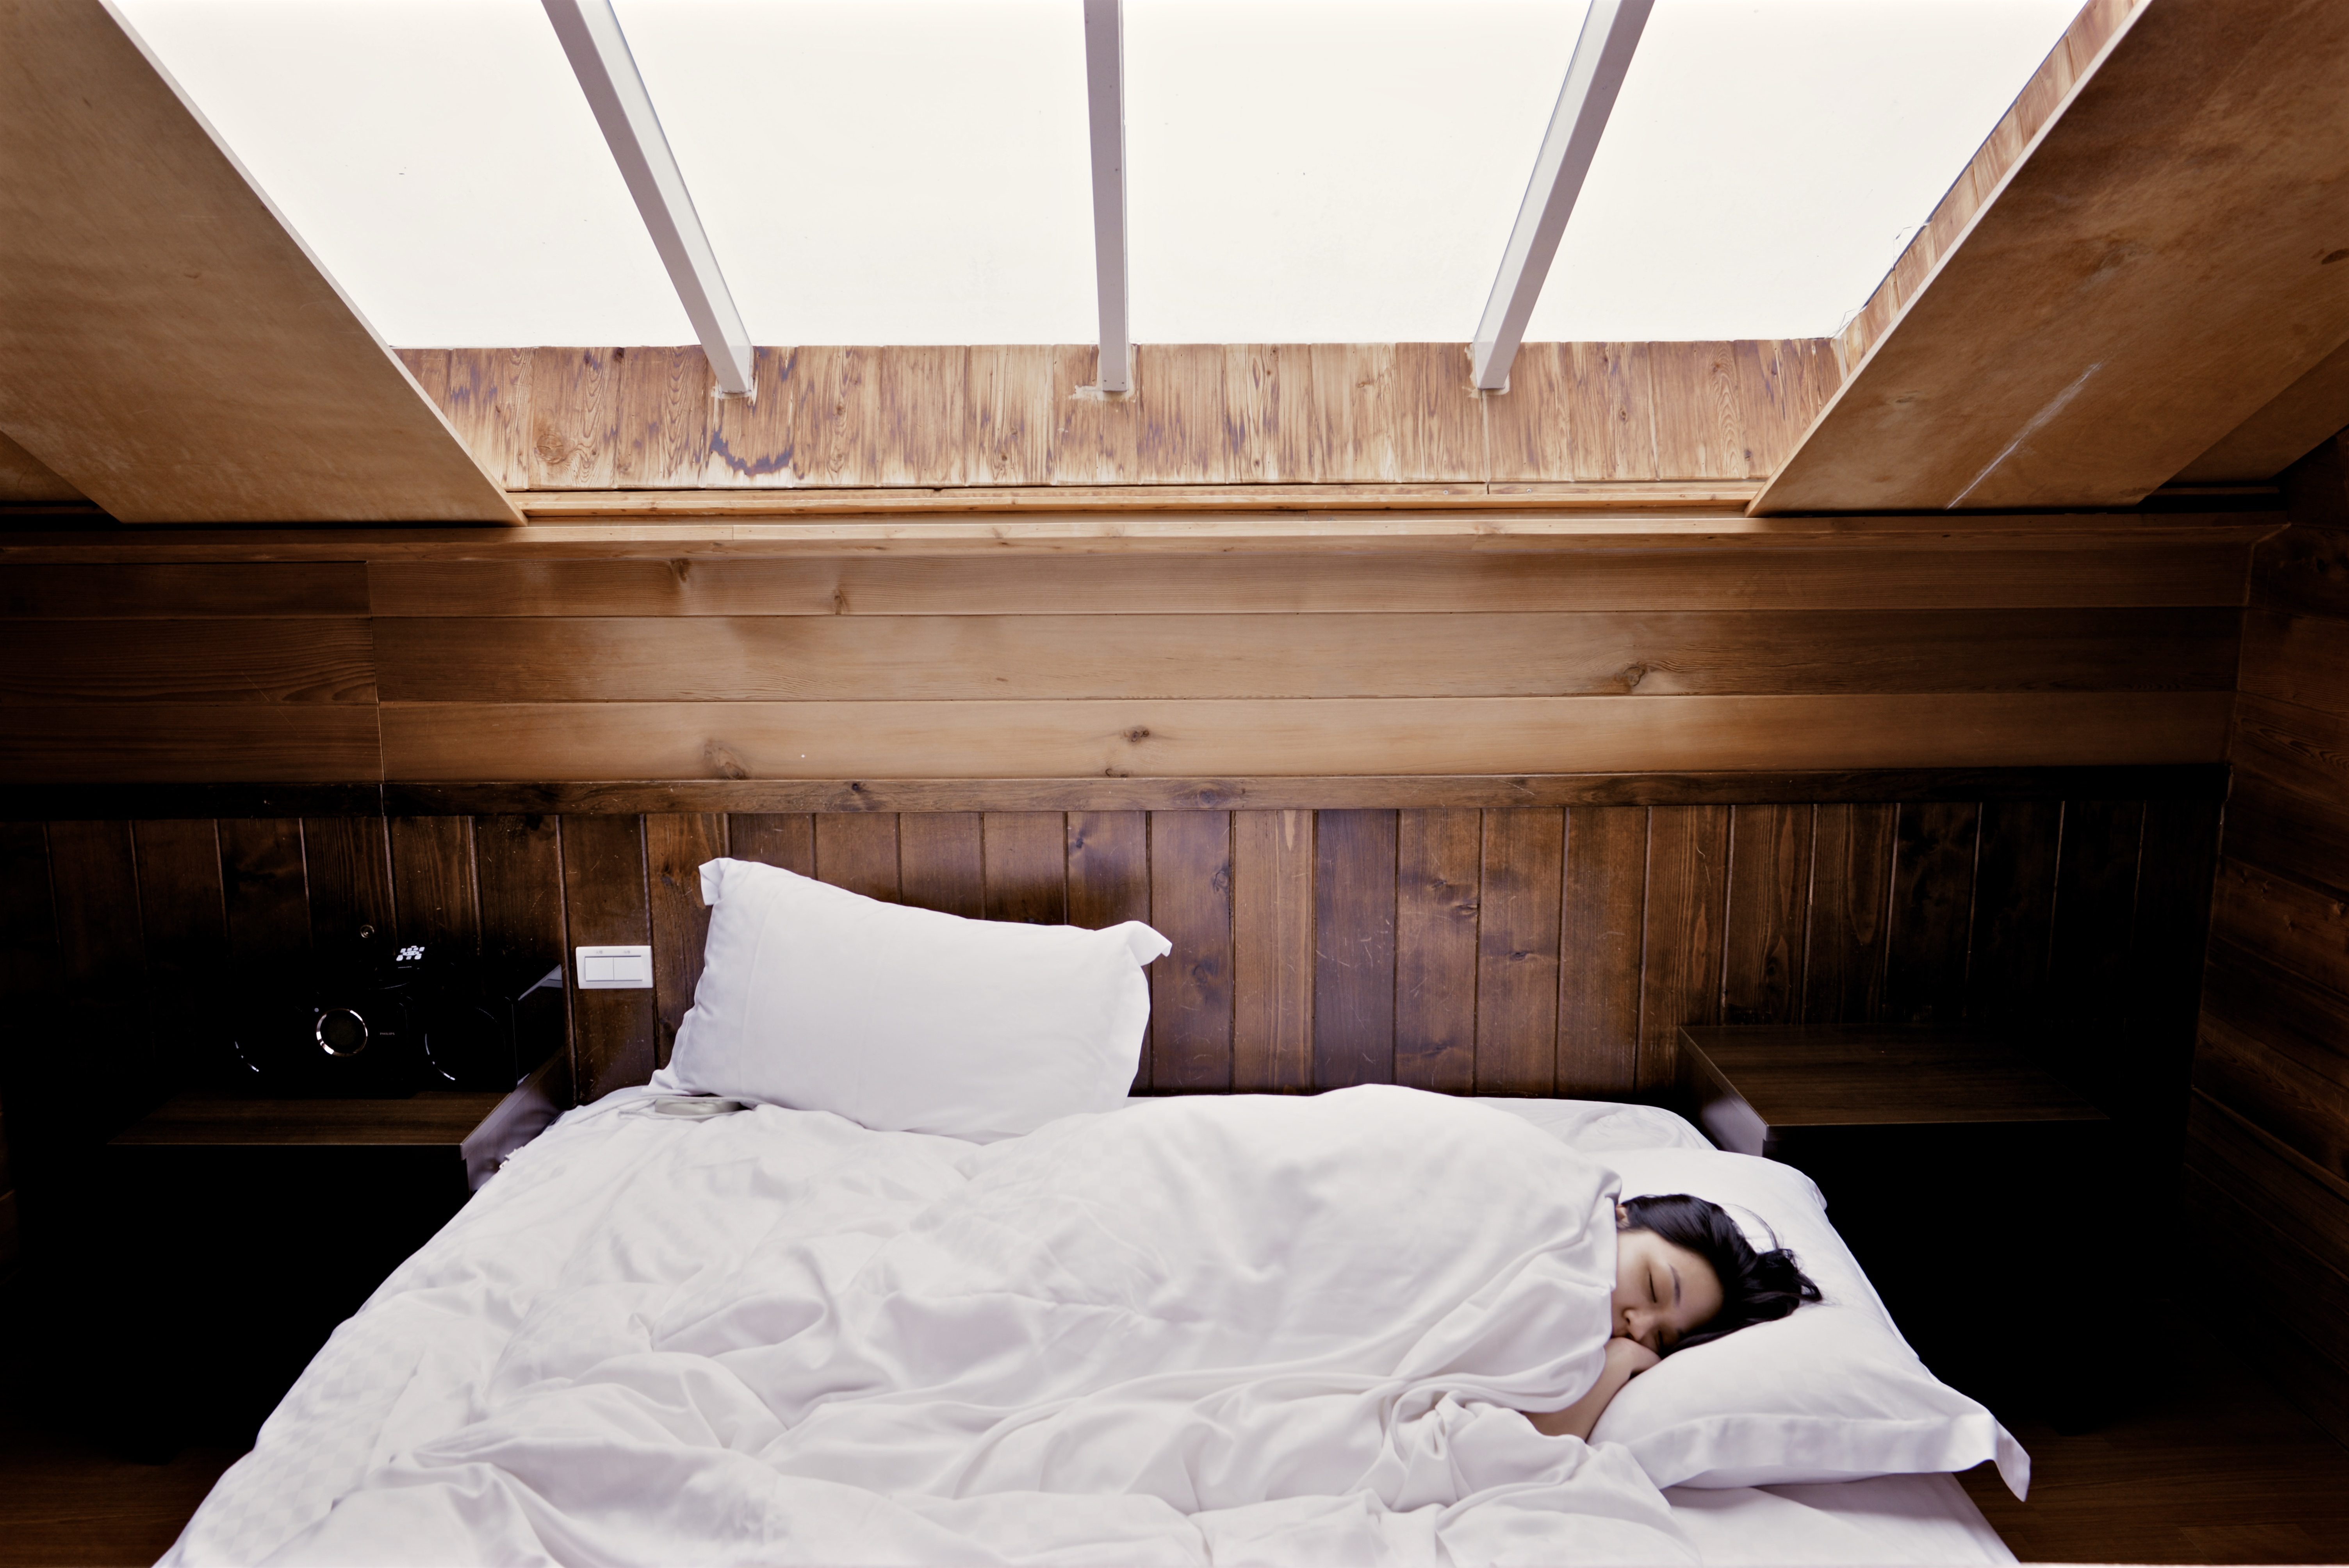 sleeping girl wooden room